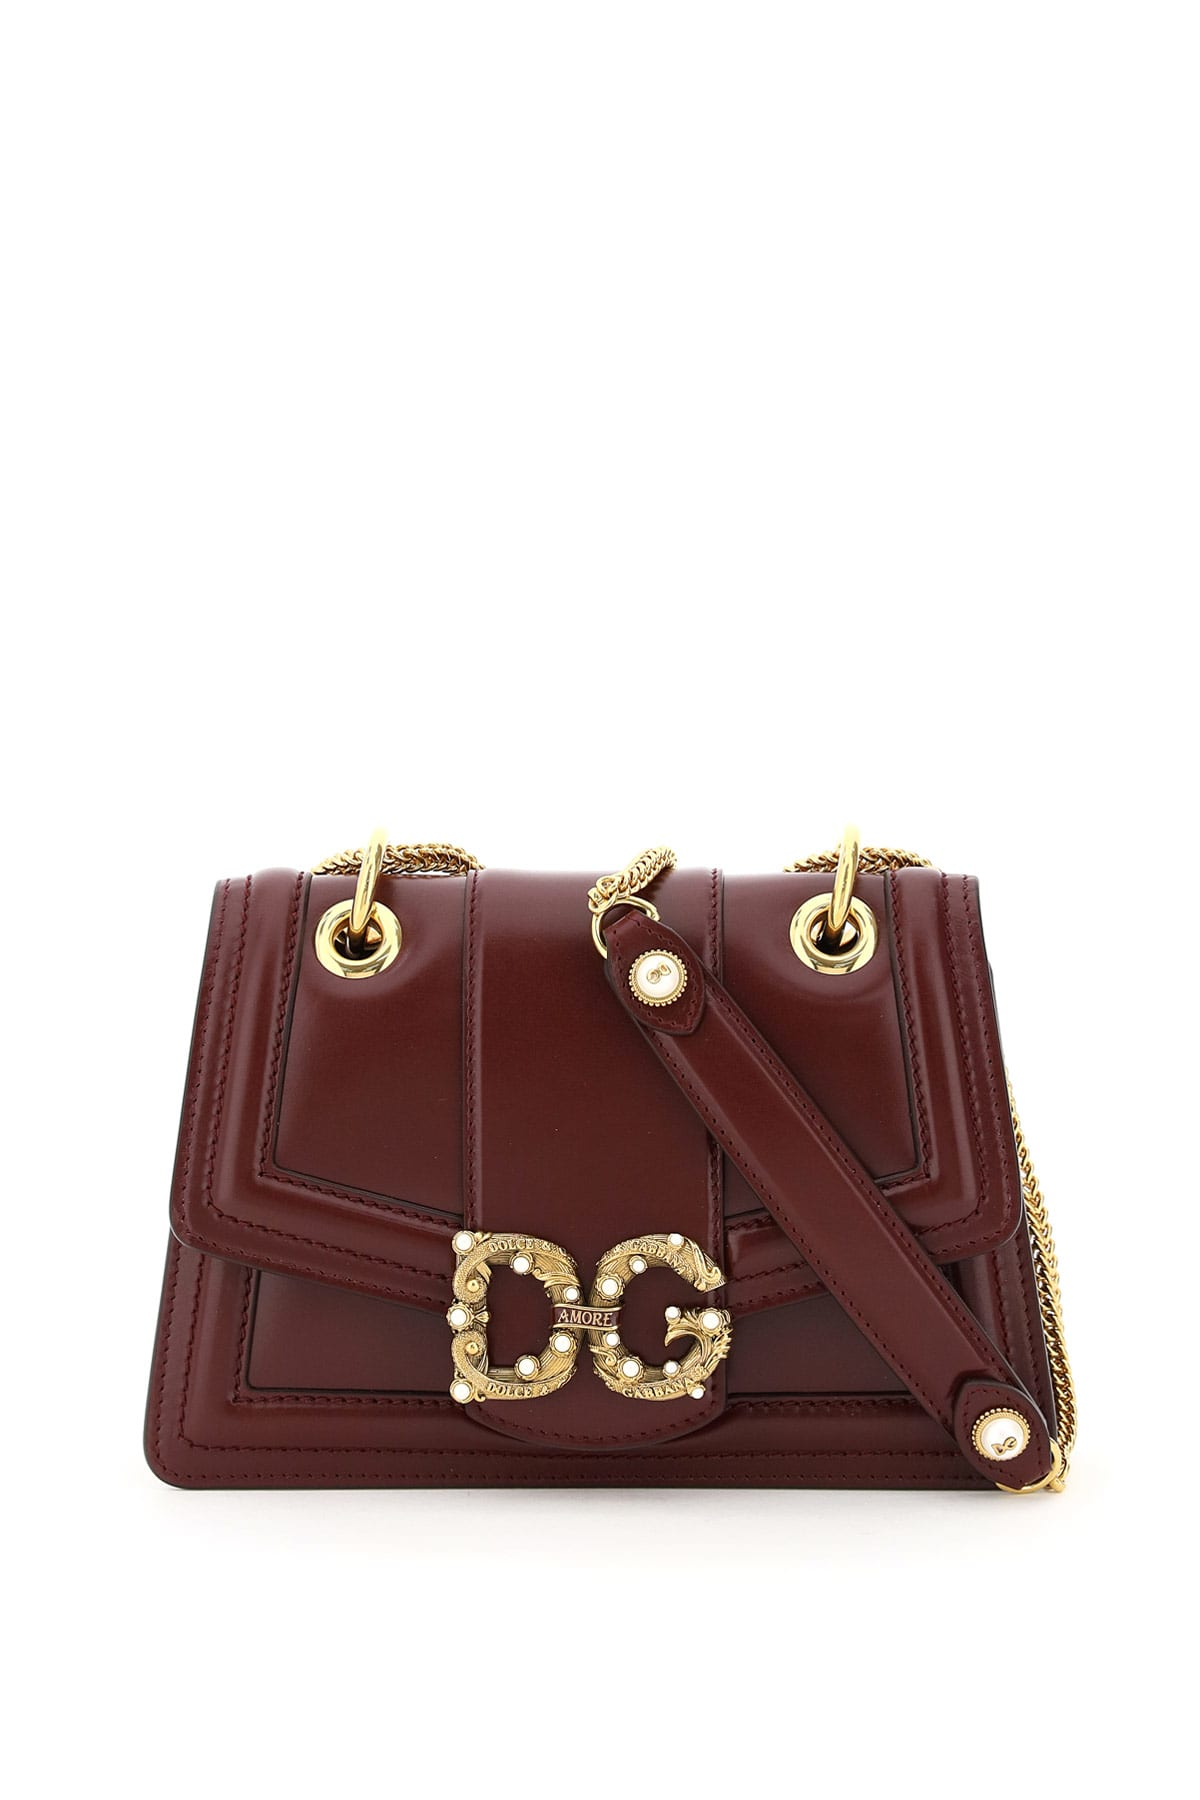 DOLCE & GABBANA Leathers SMALL DG AMORE BAG